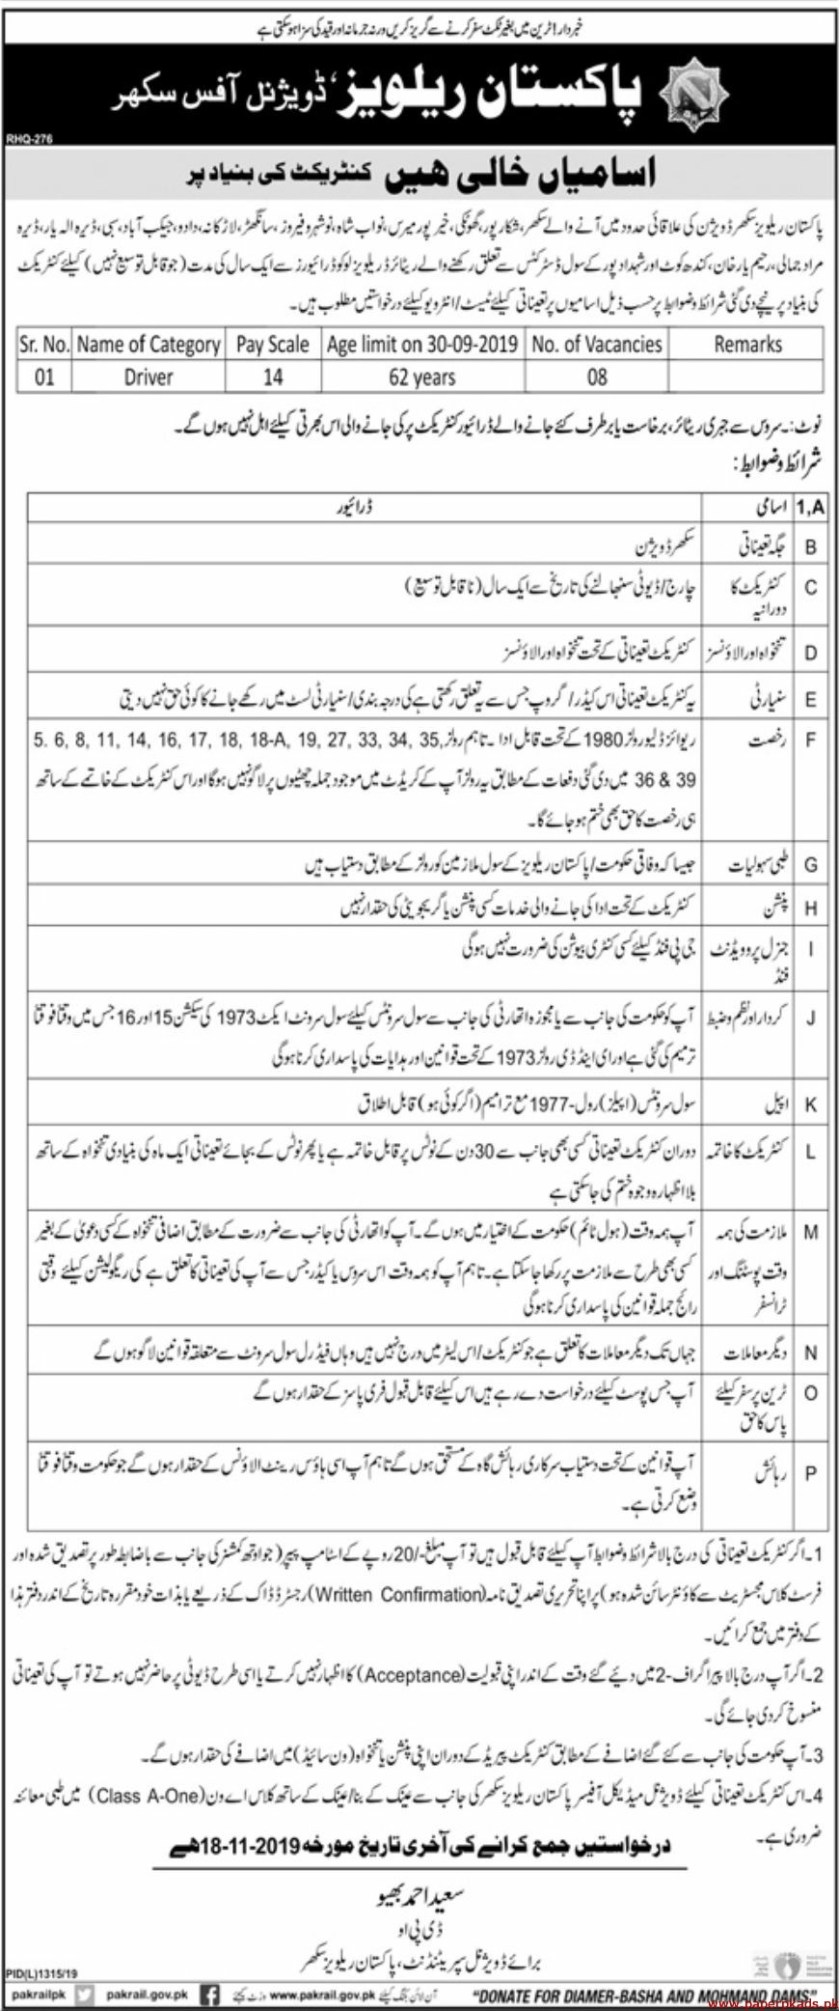 Pakistan Railways Jobs 2019 Latest